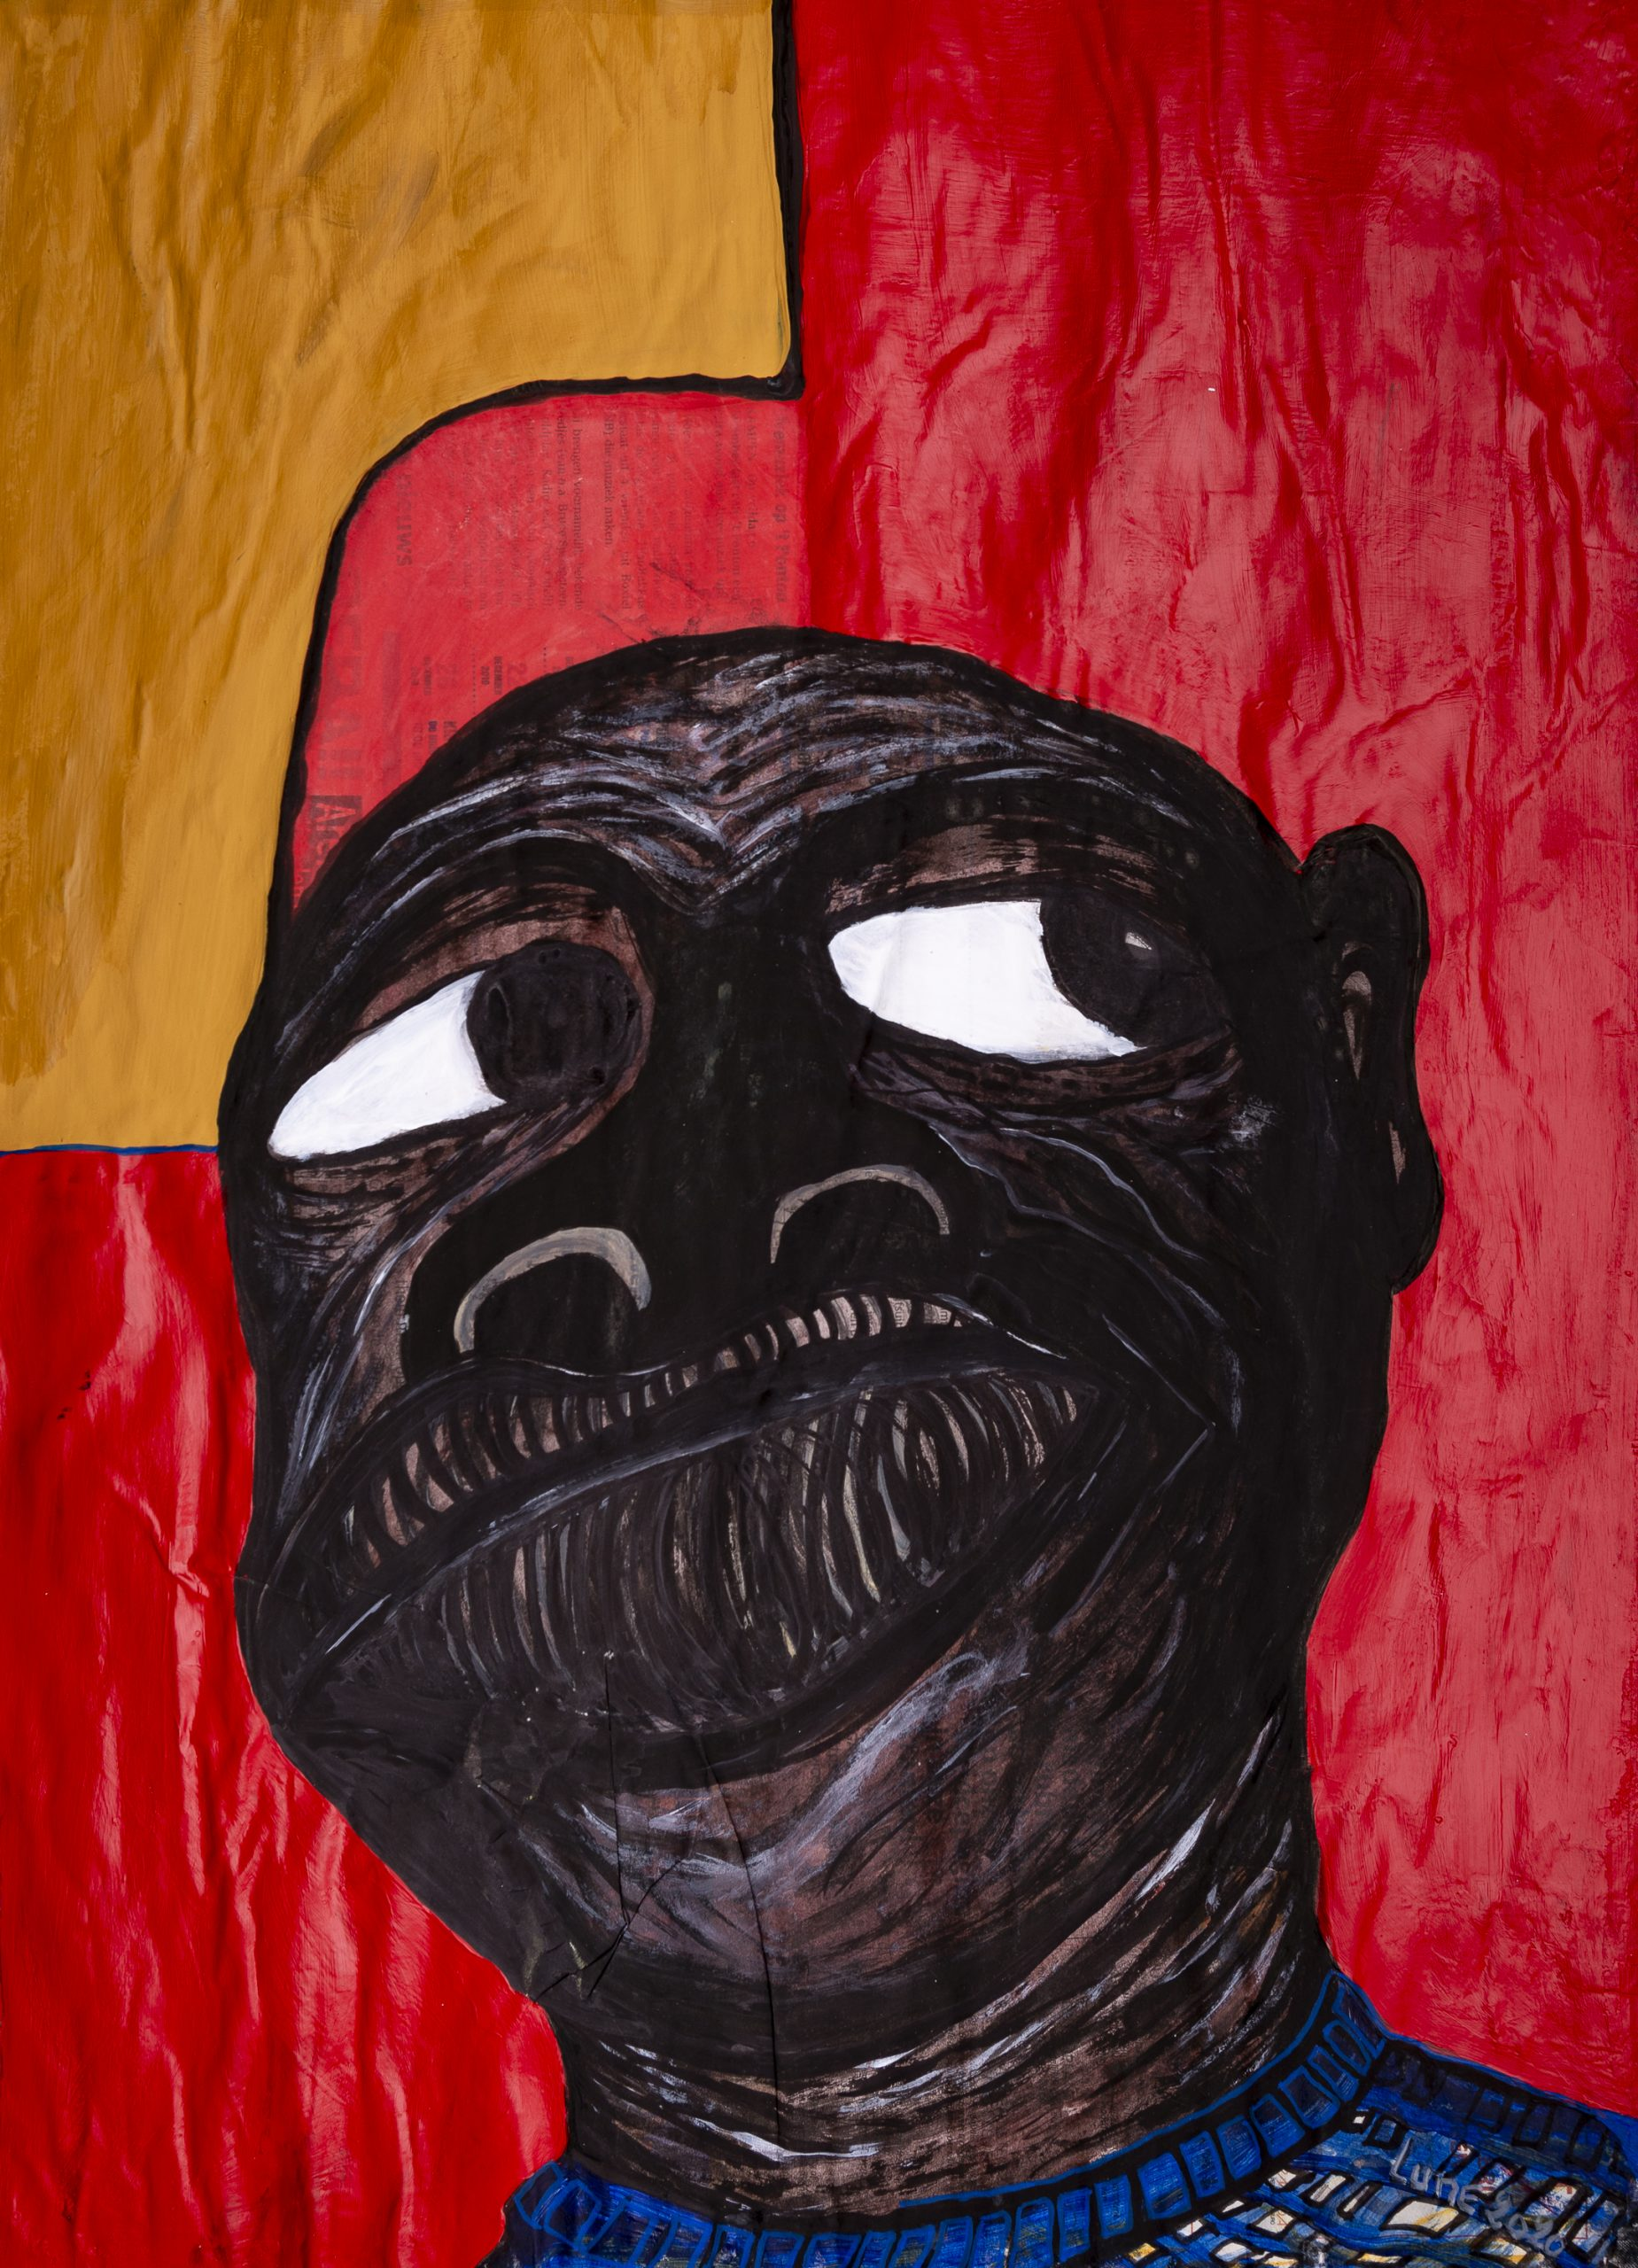 Lune Diagne, 'Ancien Combattant #2', 2020, Mixed media on paper. Courtesy of OH GALLERY and the artist